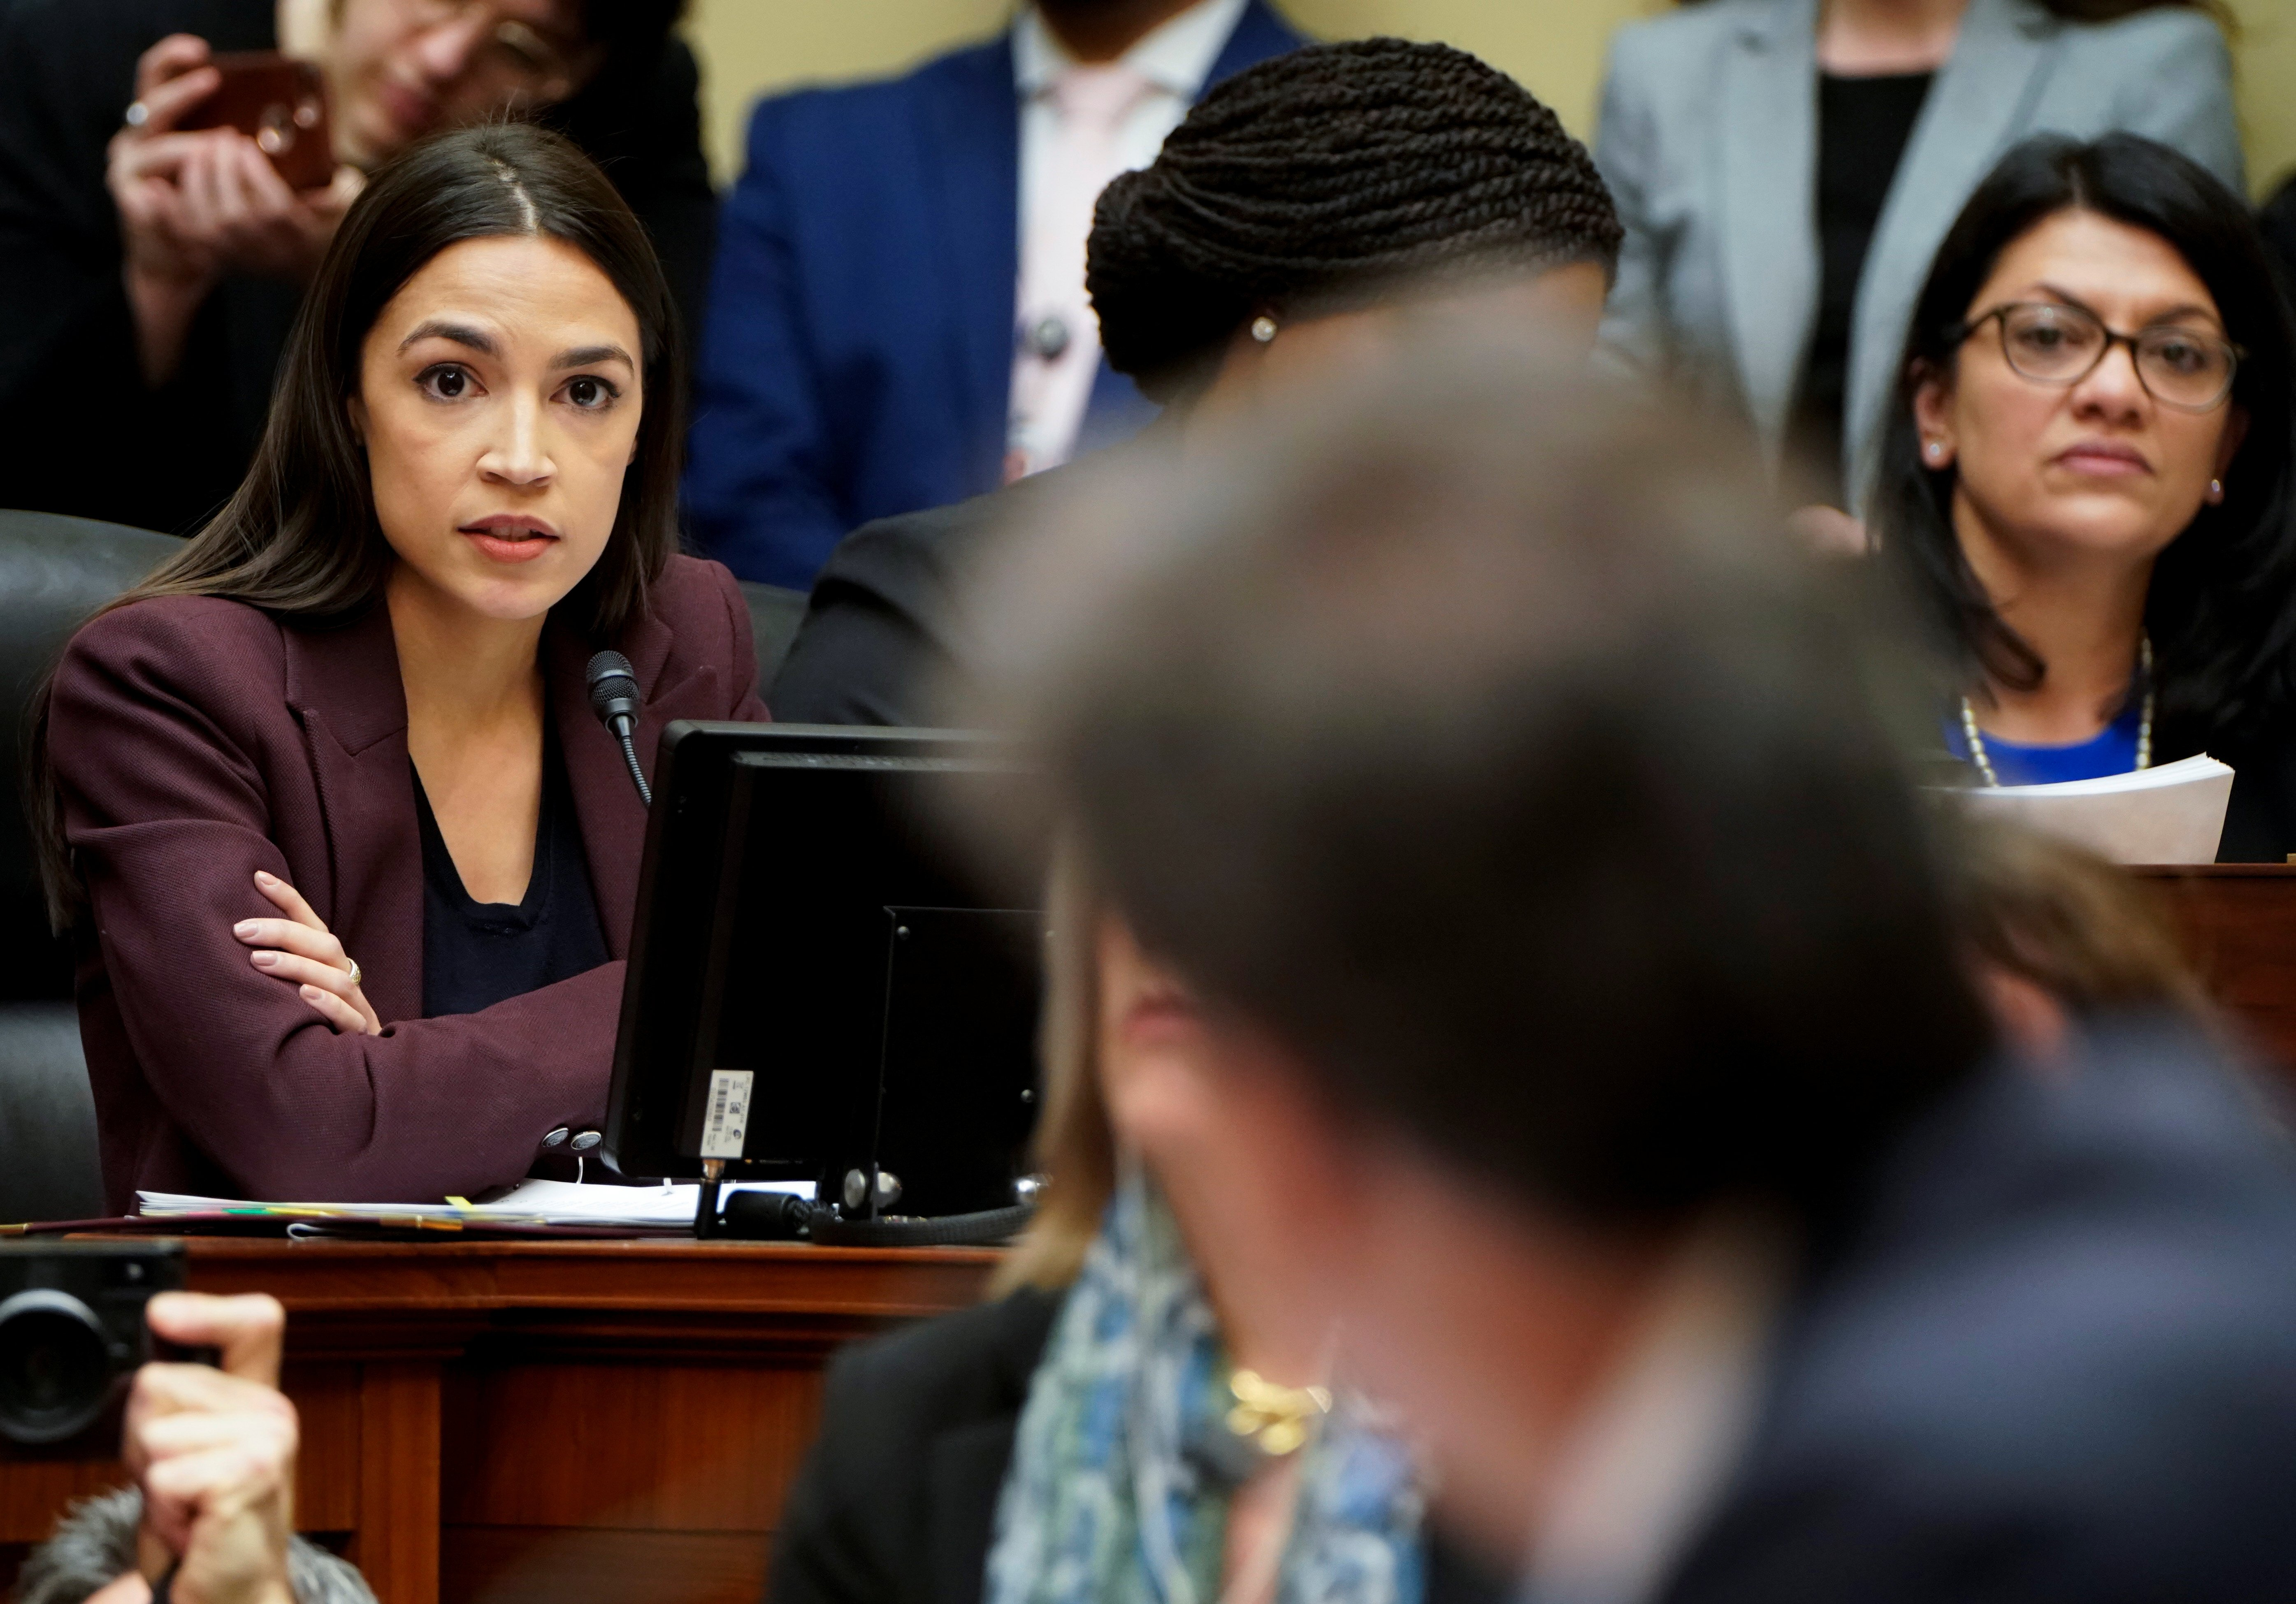 U.S. Rep. Alexandria Ocasio-Cortez (D-NY) questions Michael Cohen, the former personal attorney of U.S. President Donald Trump, as he testifies before a House Committee on Oversight and Reform hearing on Capitol Hill in Washington, U.S., February 27, 2019. REUTERS/Joshua Roberts